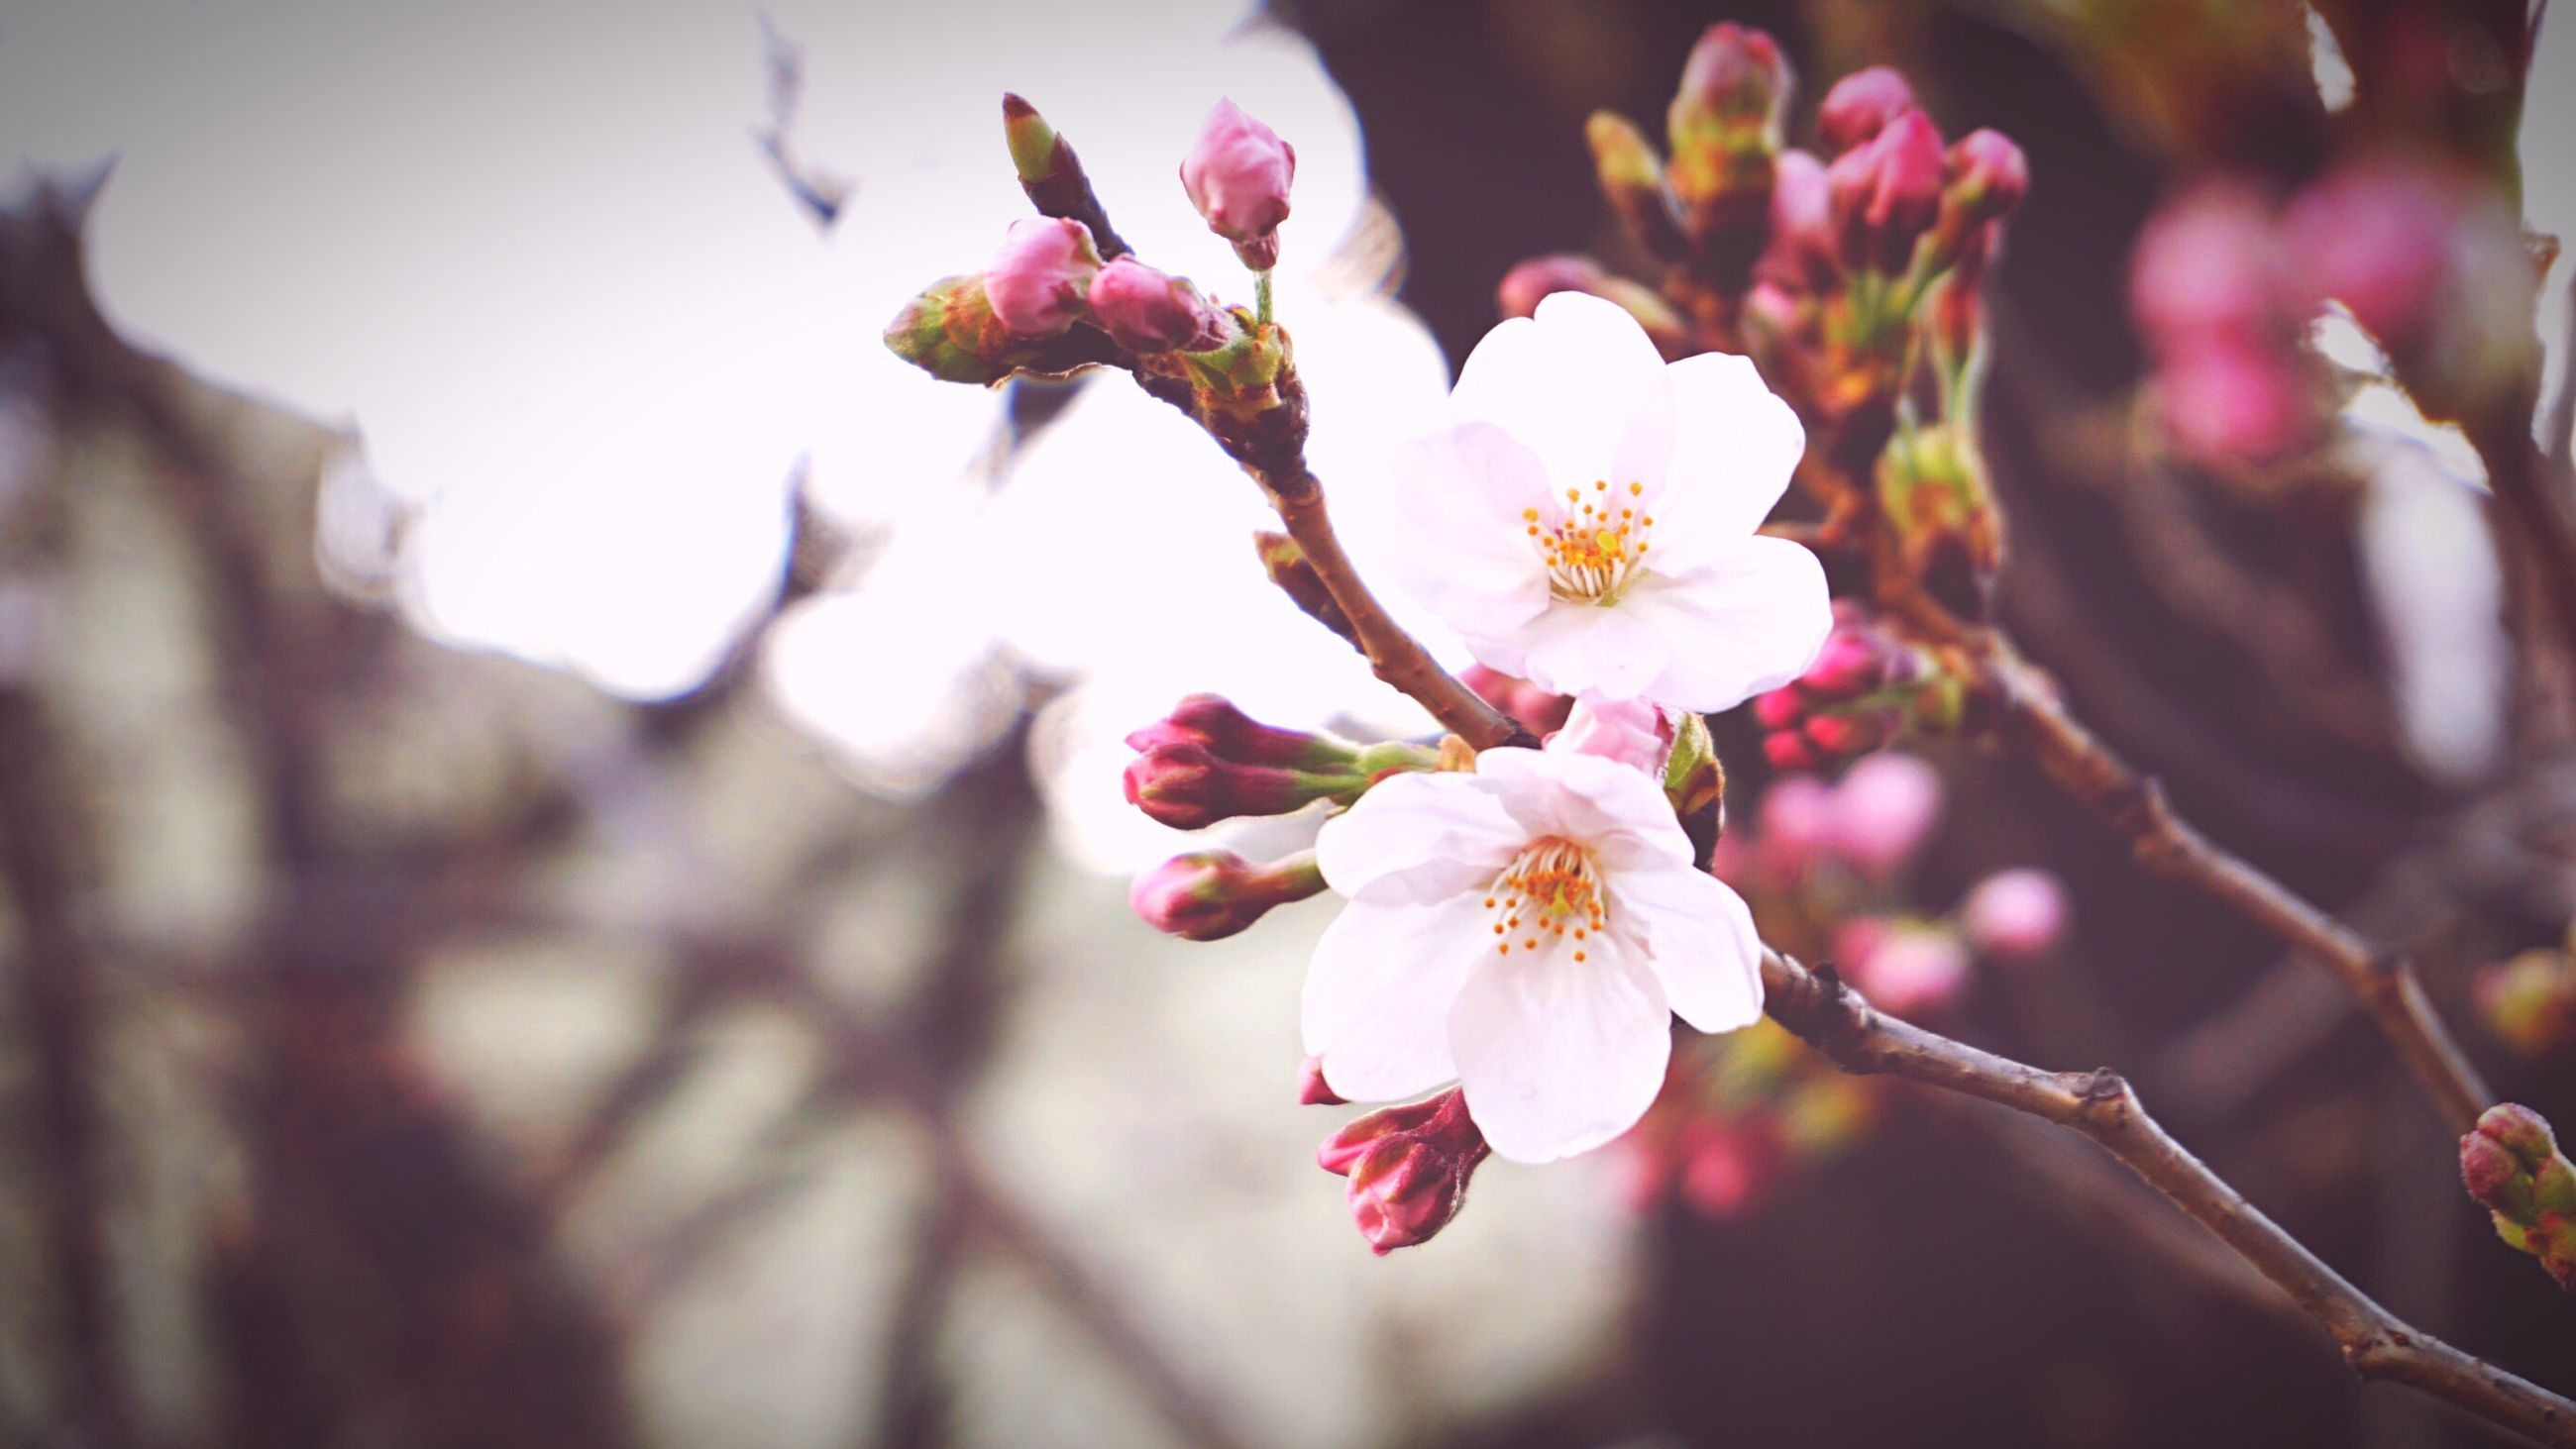 flower, nature, growth, fragility, beauty in nature, freshness, petal, close-up, pink color, no people, outdoors, blooming, tree, day, flower head, branch, plum blossom, sky